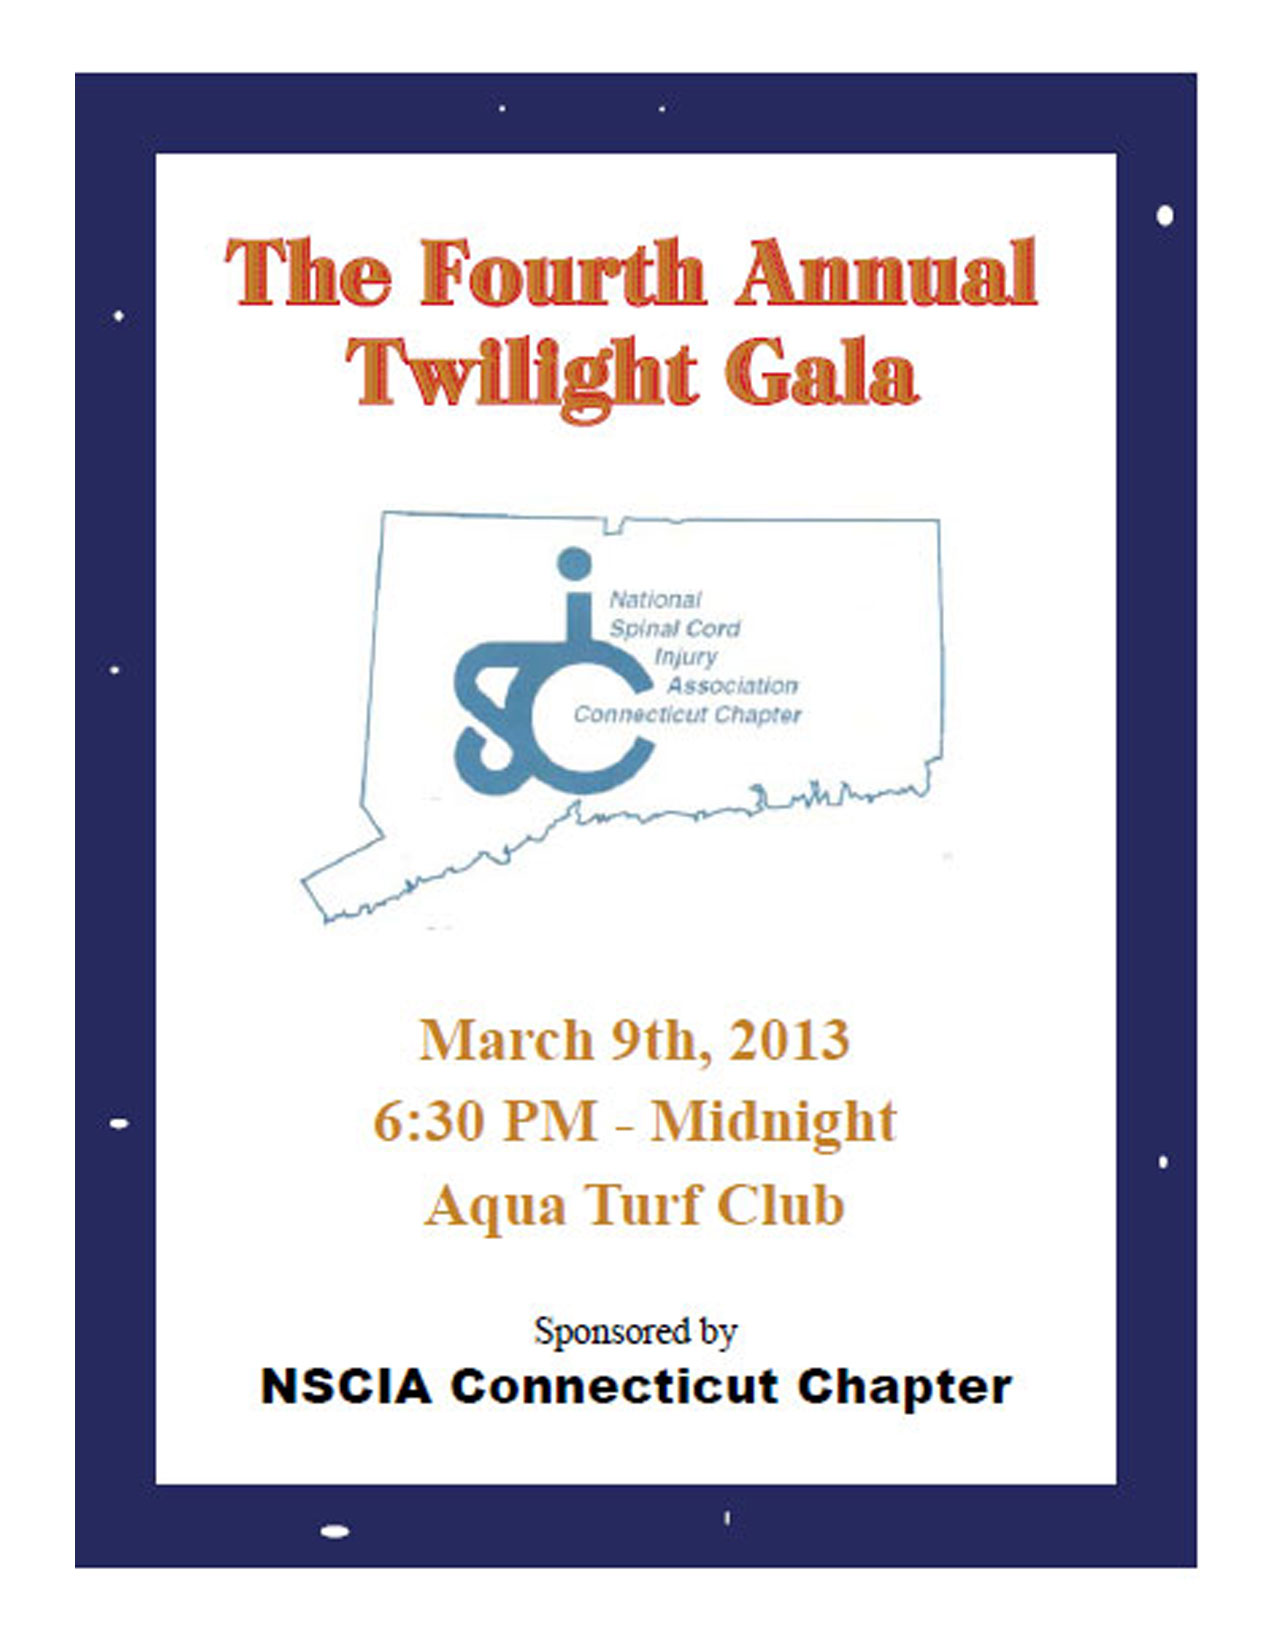 CT Spinal Cord Injury Association Twilight Gala & Auction